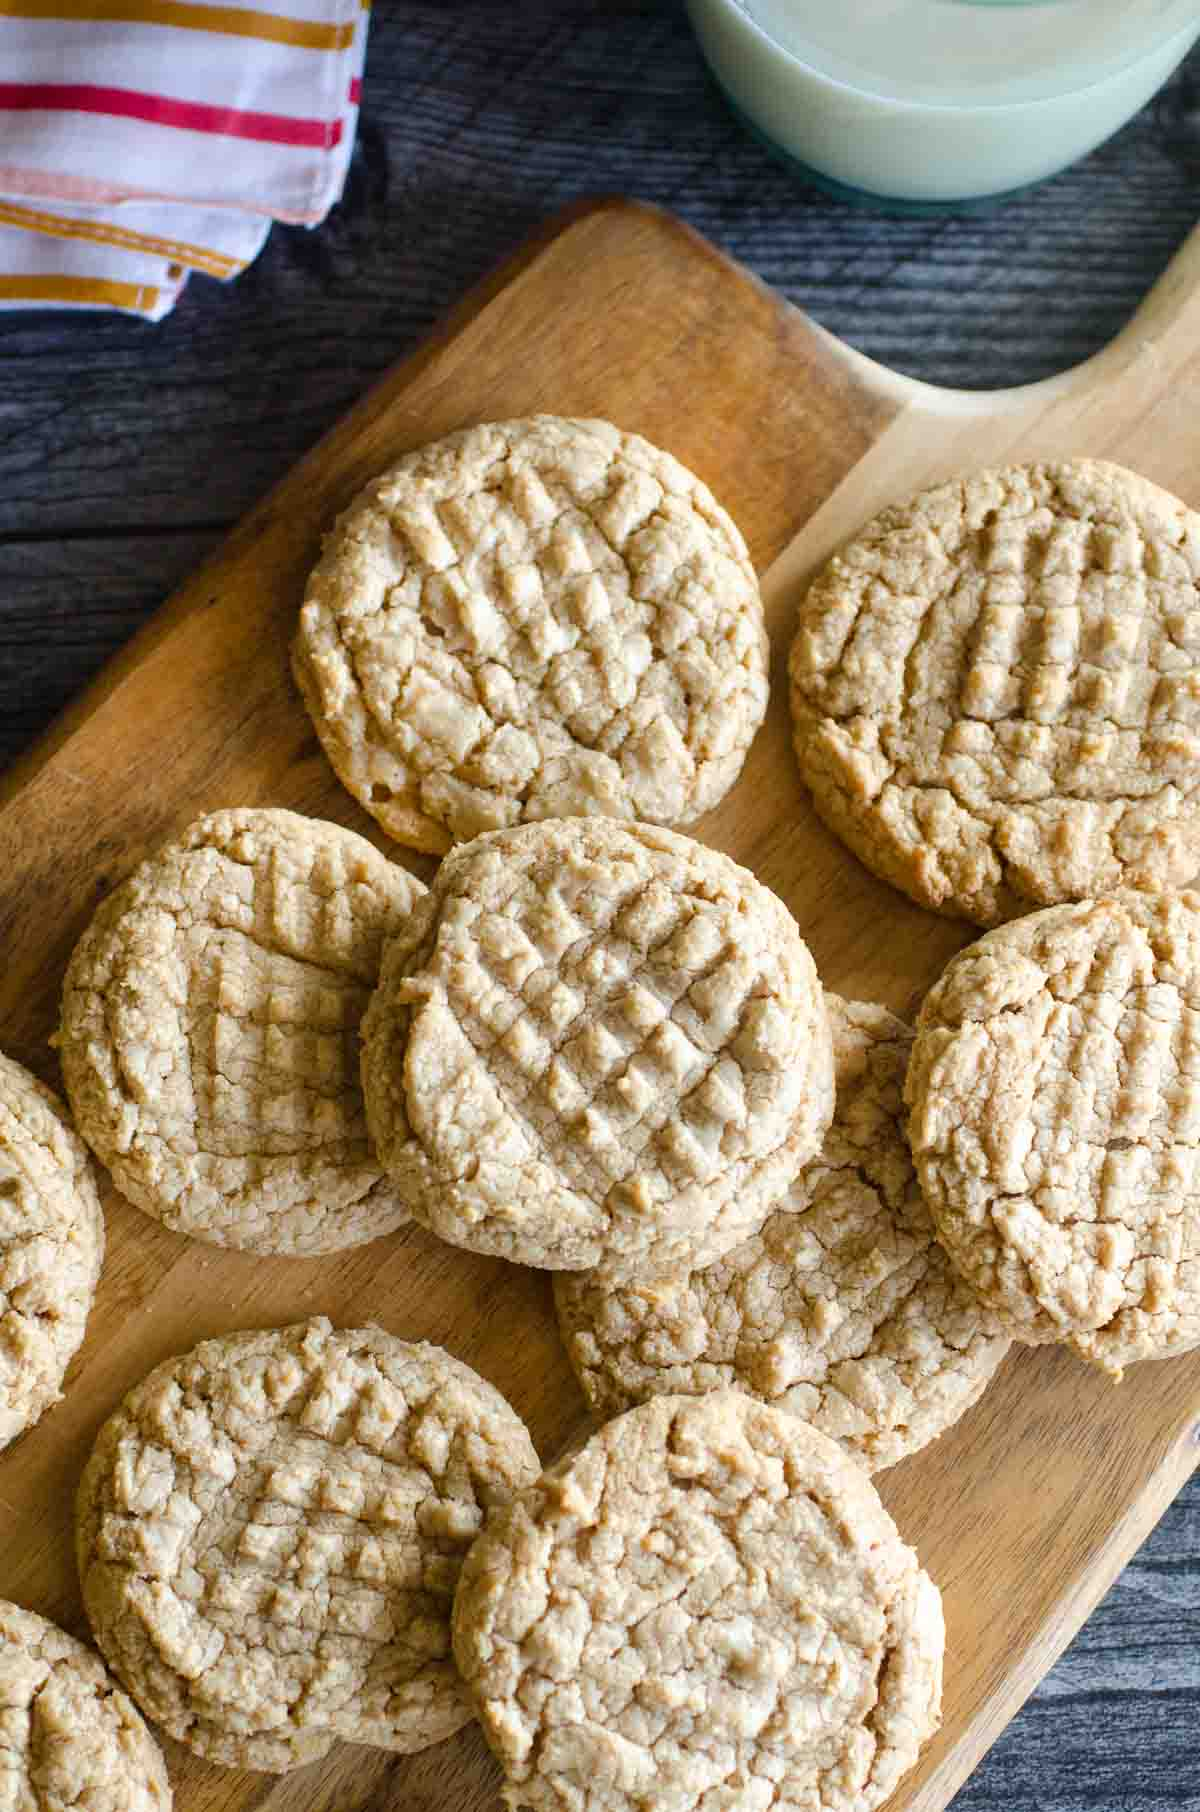 peanut butter cookies spread on a wooden serving platter